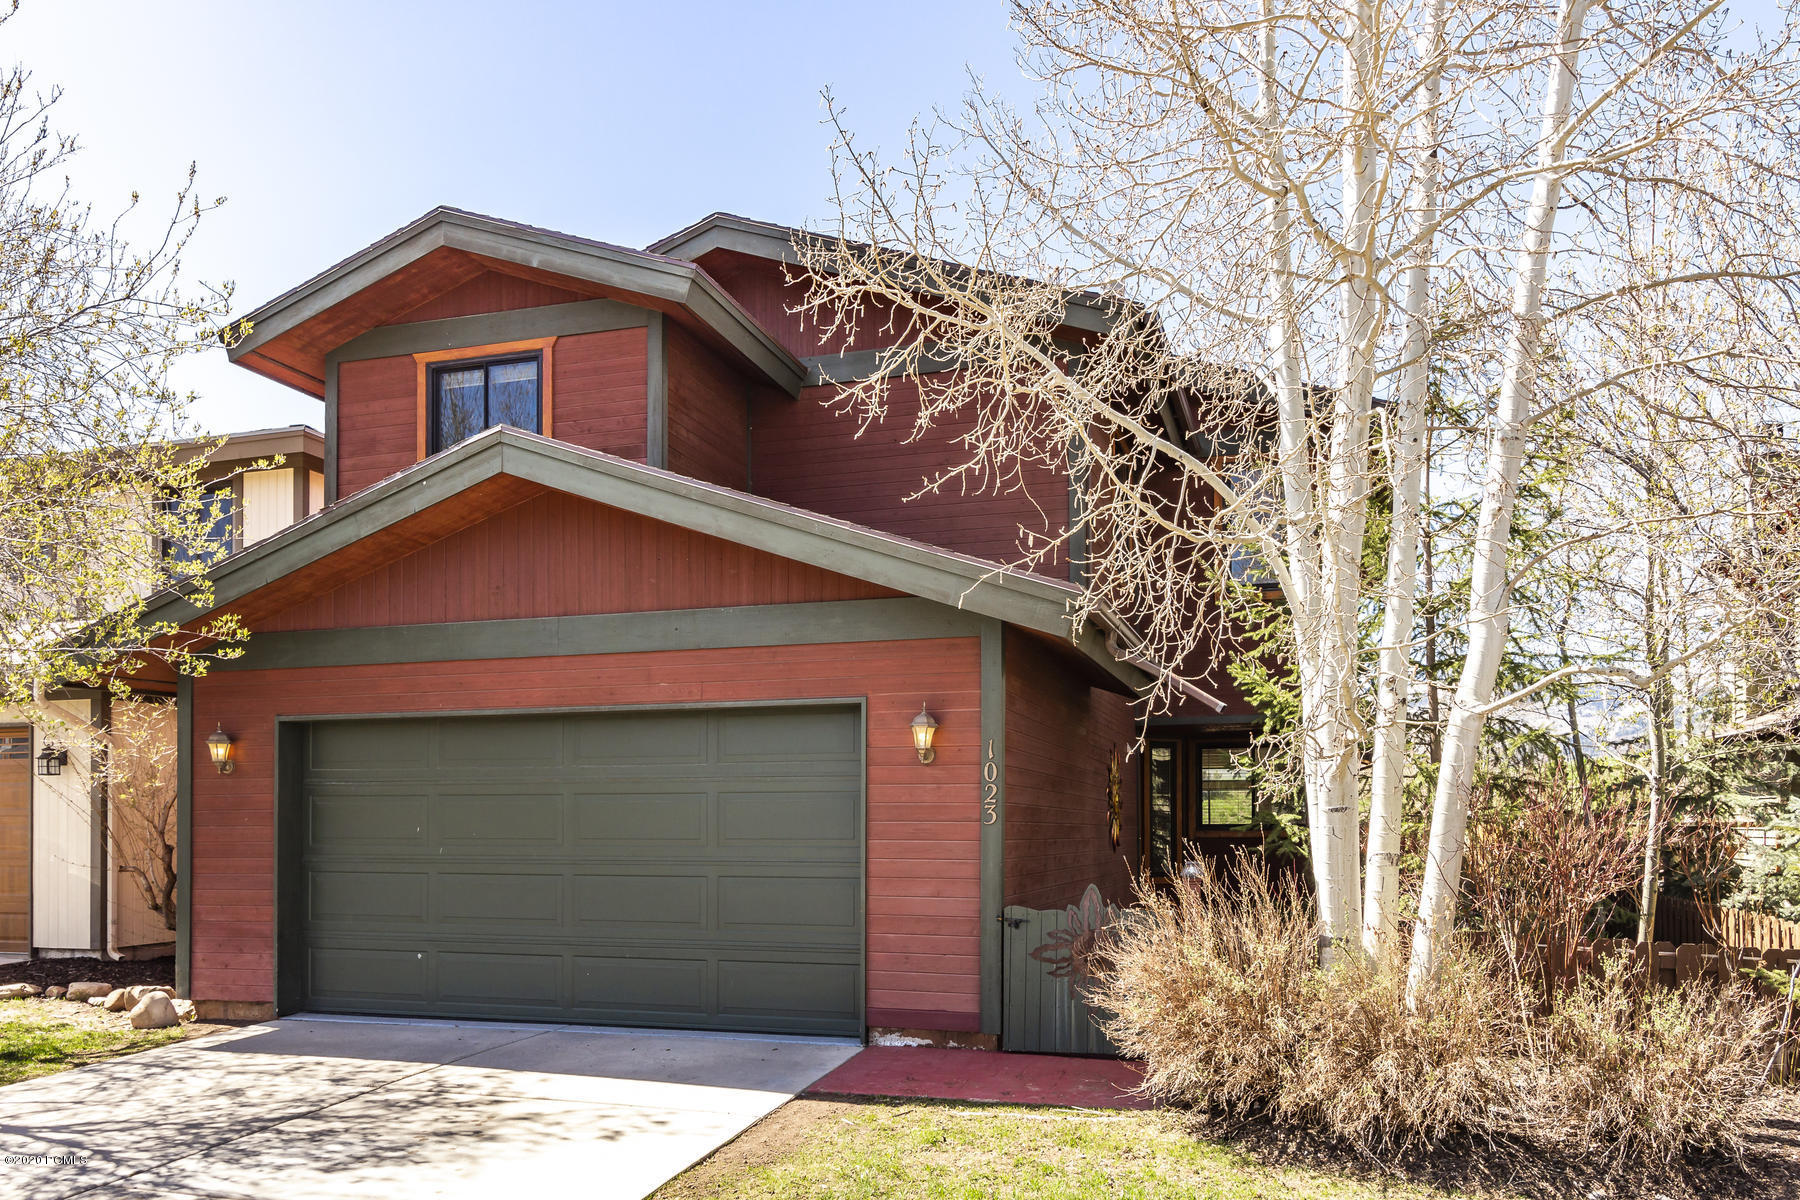 1023 Old Stone House Way, Park City, Utah 84098, 3 Bedrooms Bedrooms, ,3 BathroomsBathrooms,Single Family,For Sale,Old Stone House,12000297